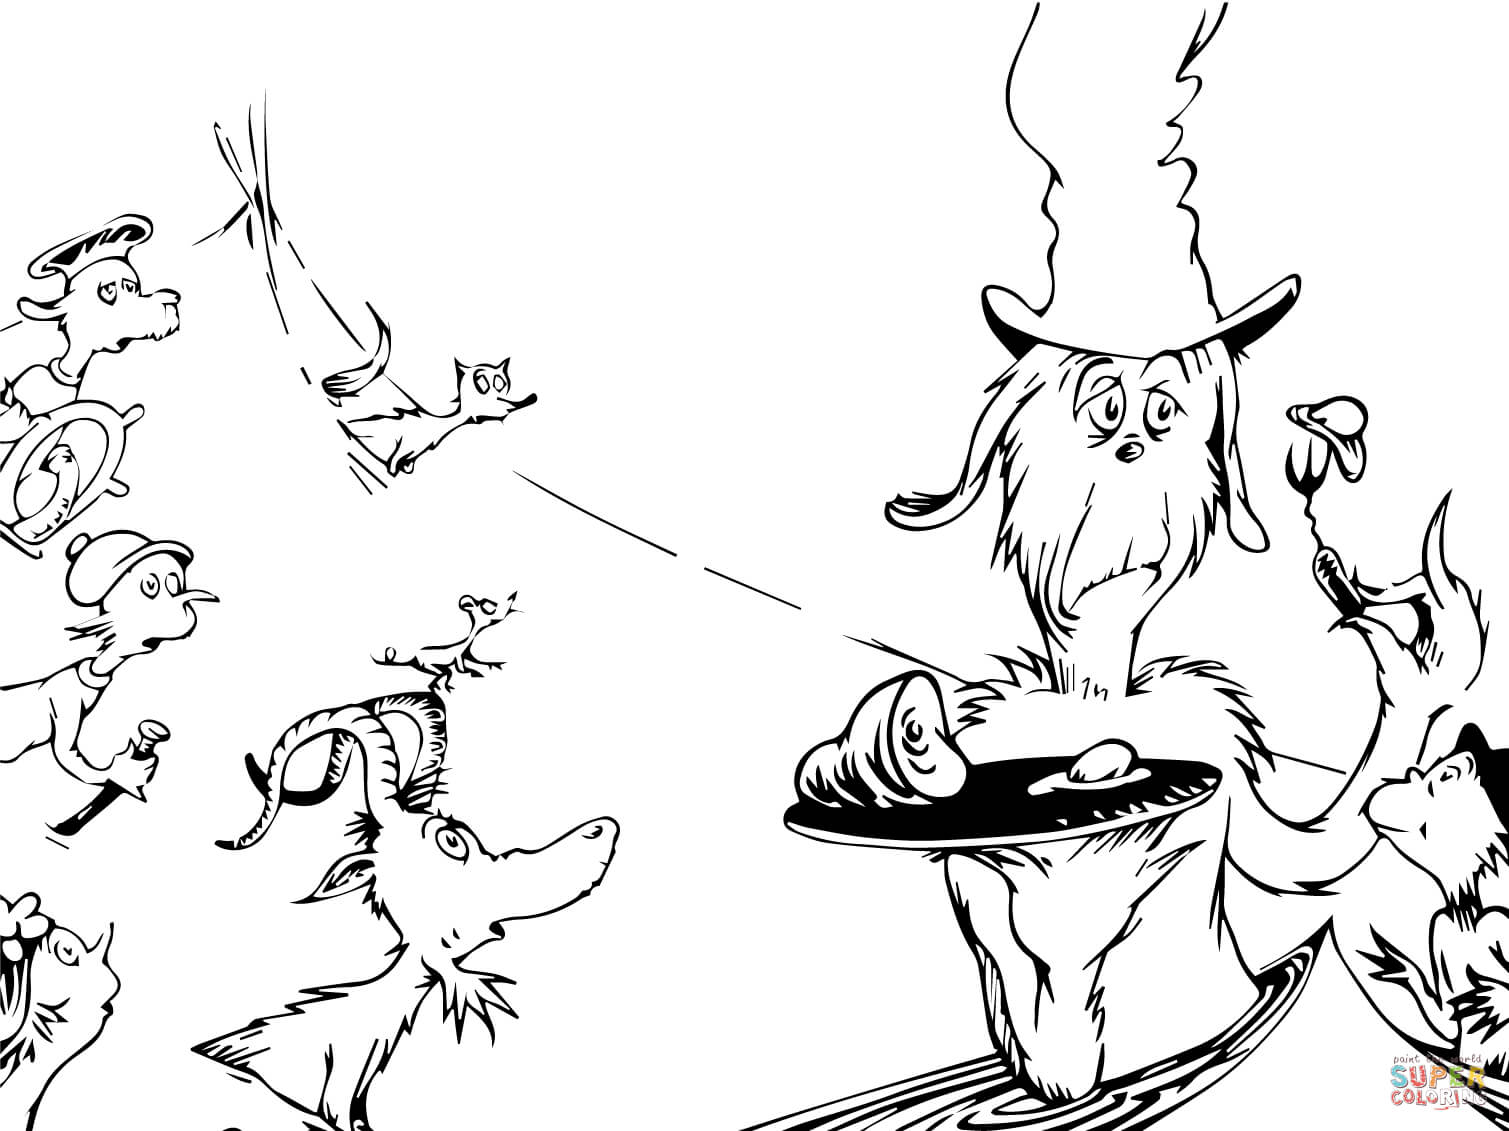 green eggs and ham coloring page green eggs and ham coloring page best coloring pages for and eggs coloring green page ham